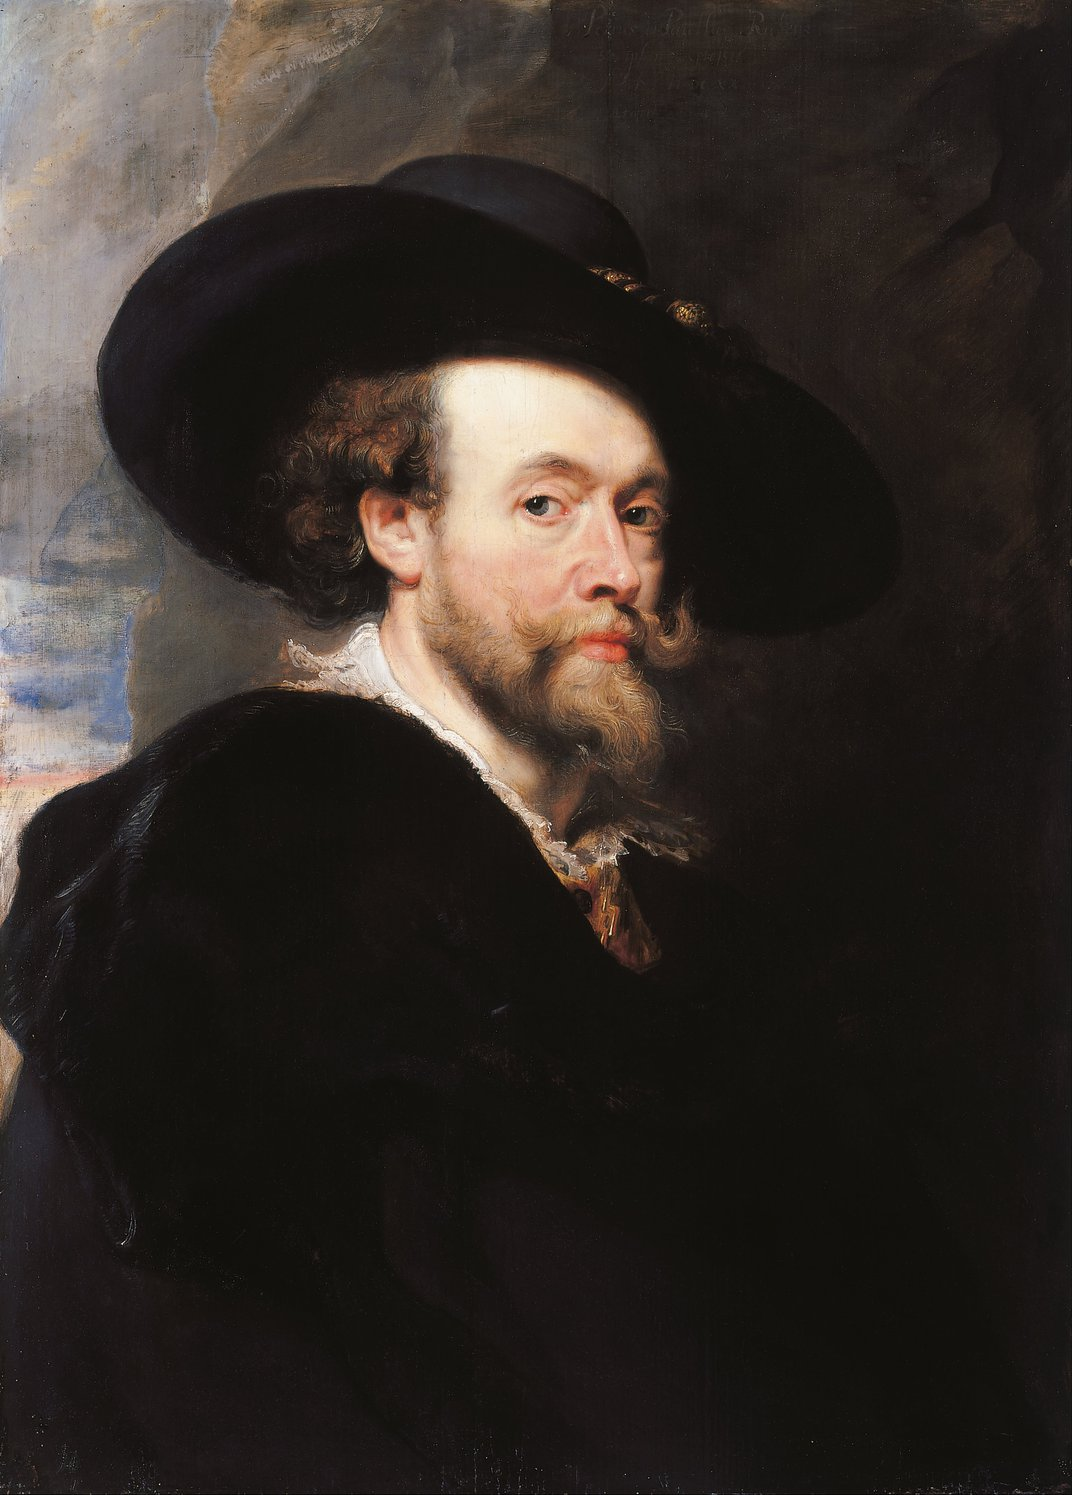 Did Peter Paul Rubens Really Paint 'Samson and Delilah'?